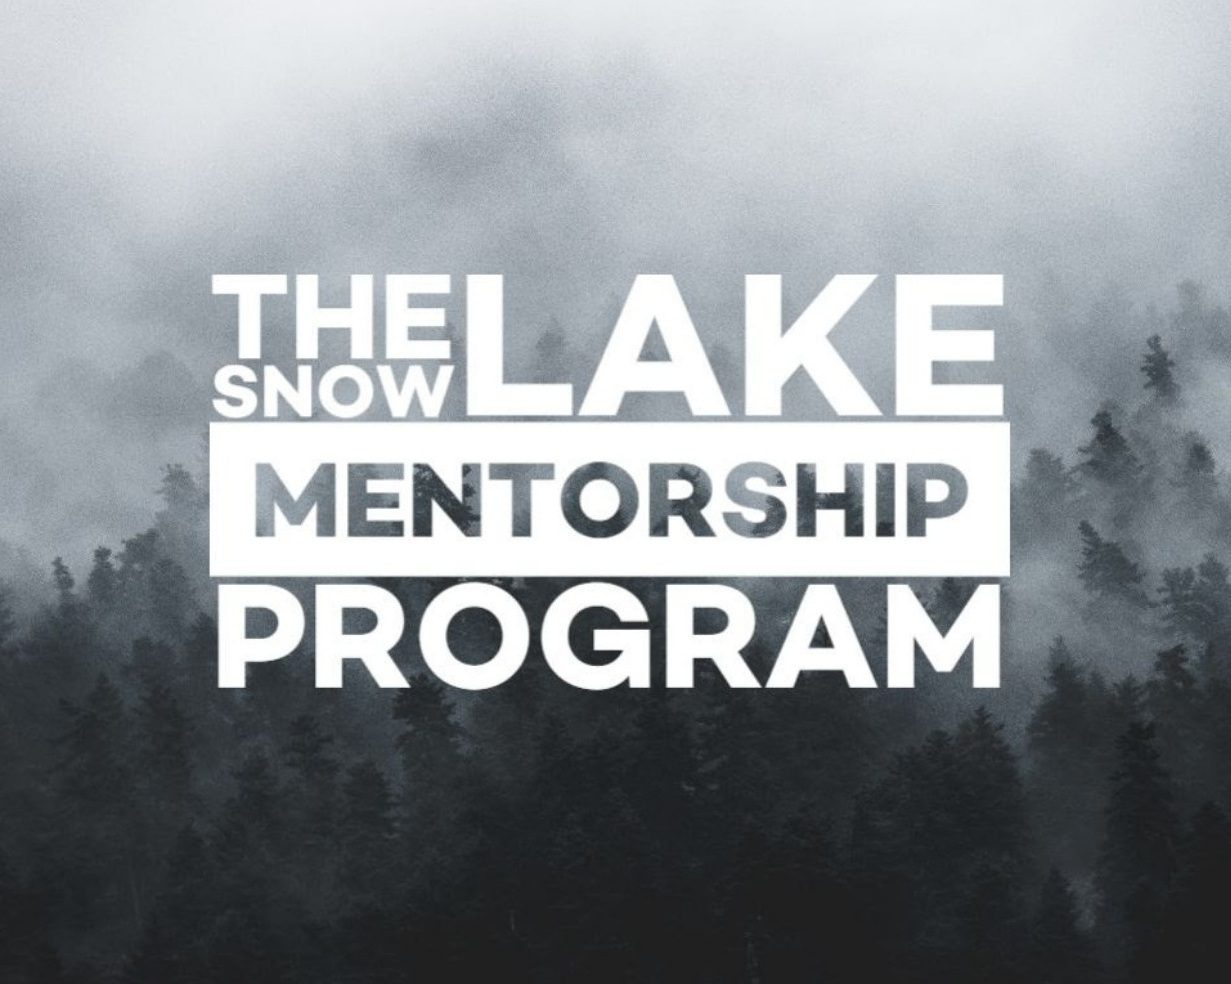 Keep a keen eye on coveted Mentorship opportunities.